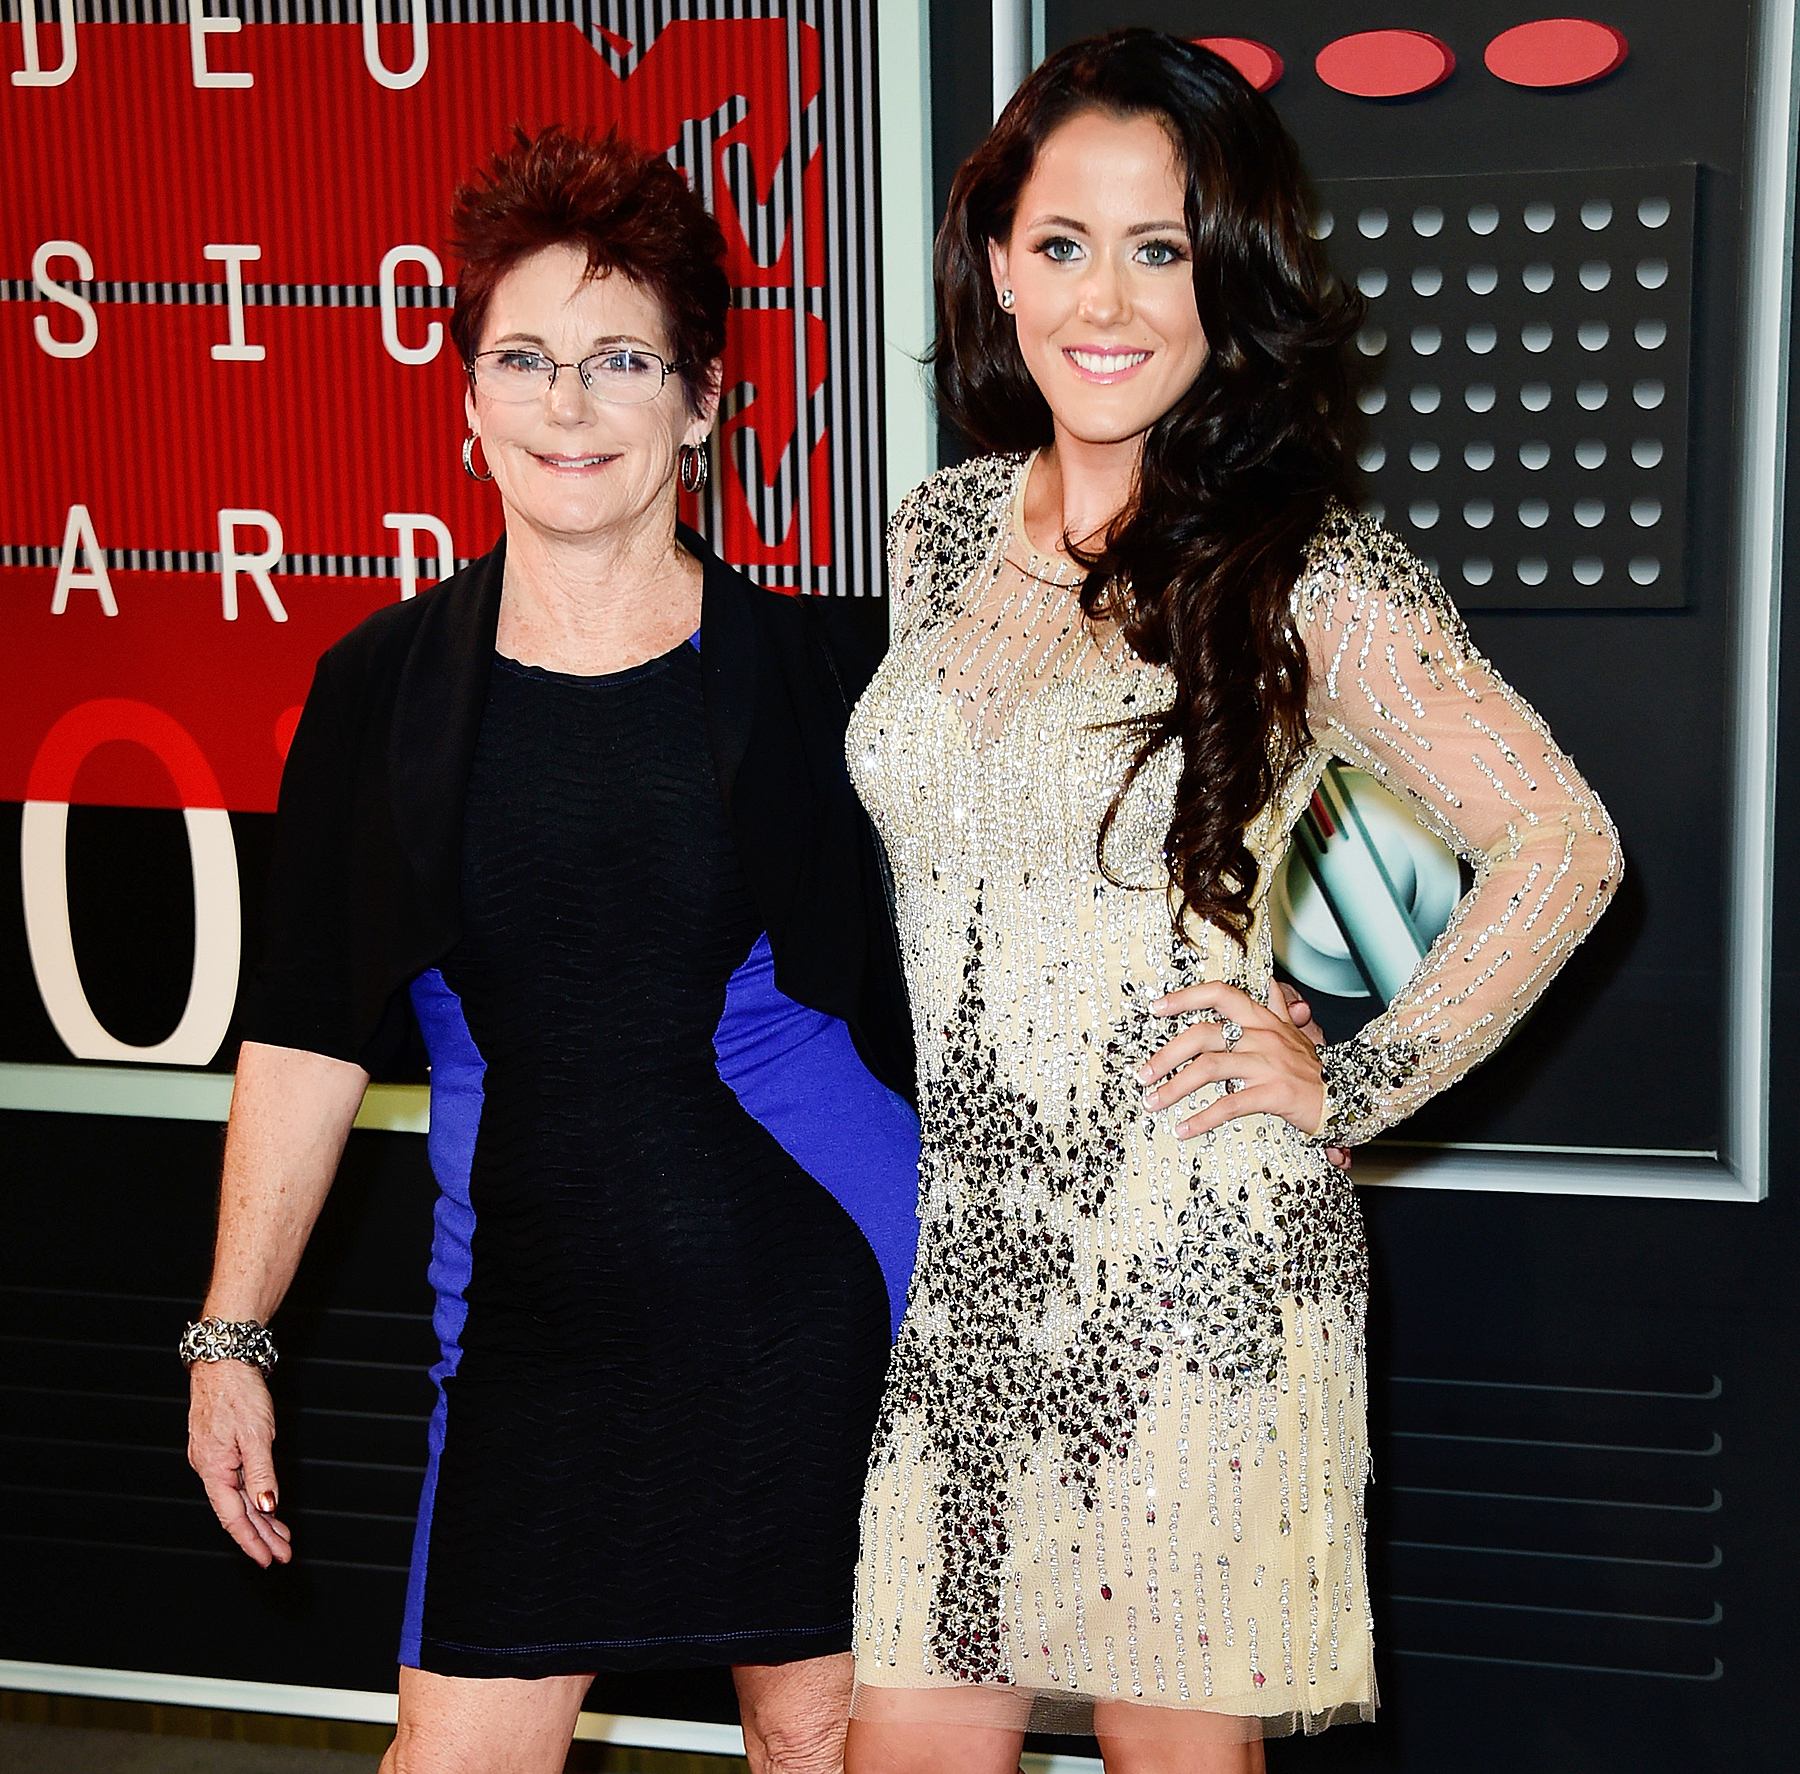 Barbara Evans and Jenelle Evans